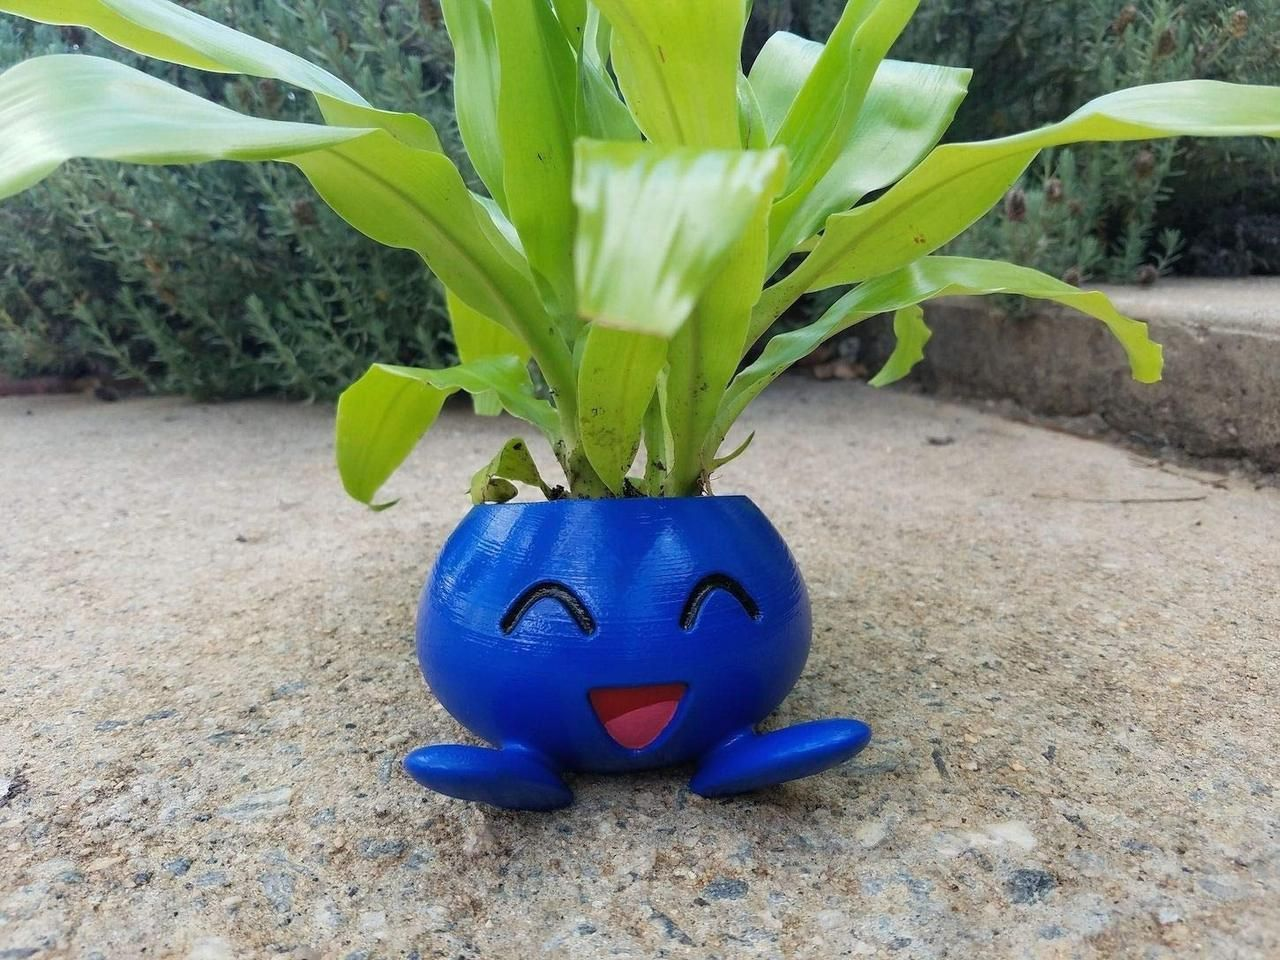 3D Printed Pokemon Planters made by oneshot3D -